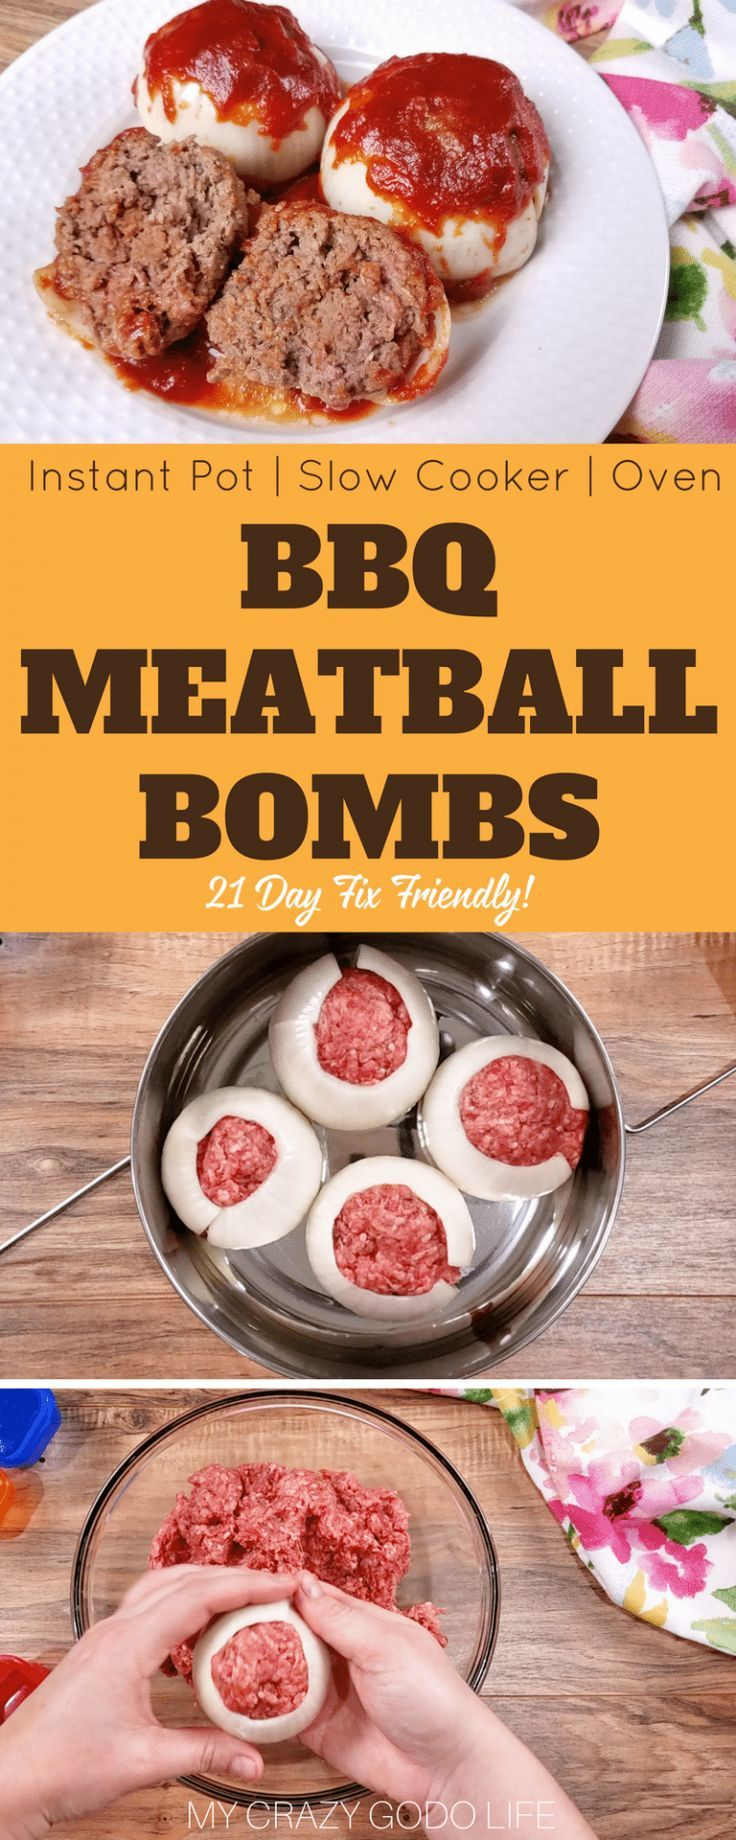 Mini BBQ Meatloaf Bombs are a delicious and healthy dinner that is family friendly! For those of you who don't want to make one big meatloaf, I love making this 21 Day Fix mini meatloaf dinner! Mini Onion Bombs   Crockpot Mini Meatloaf   Instant Pot Mini